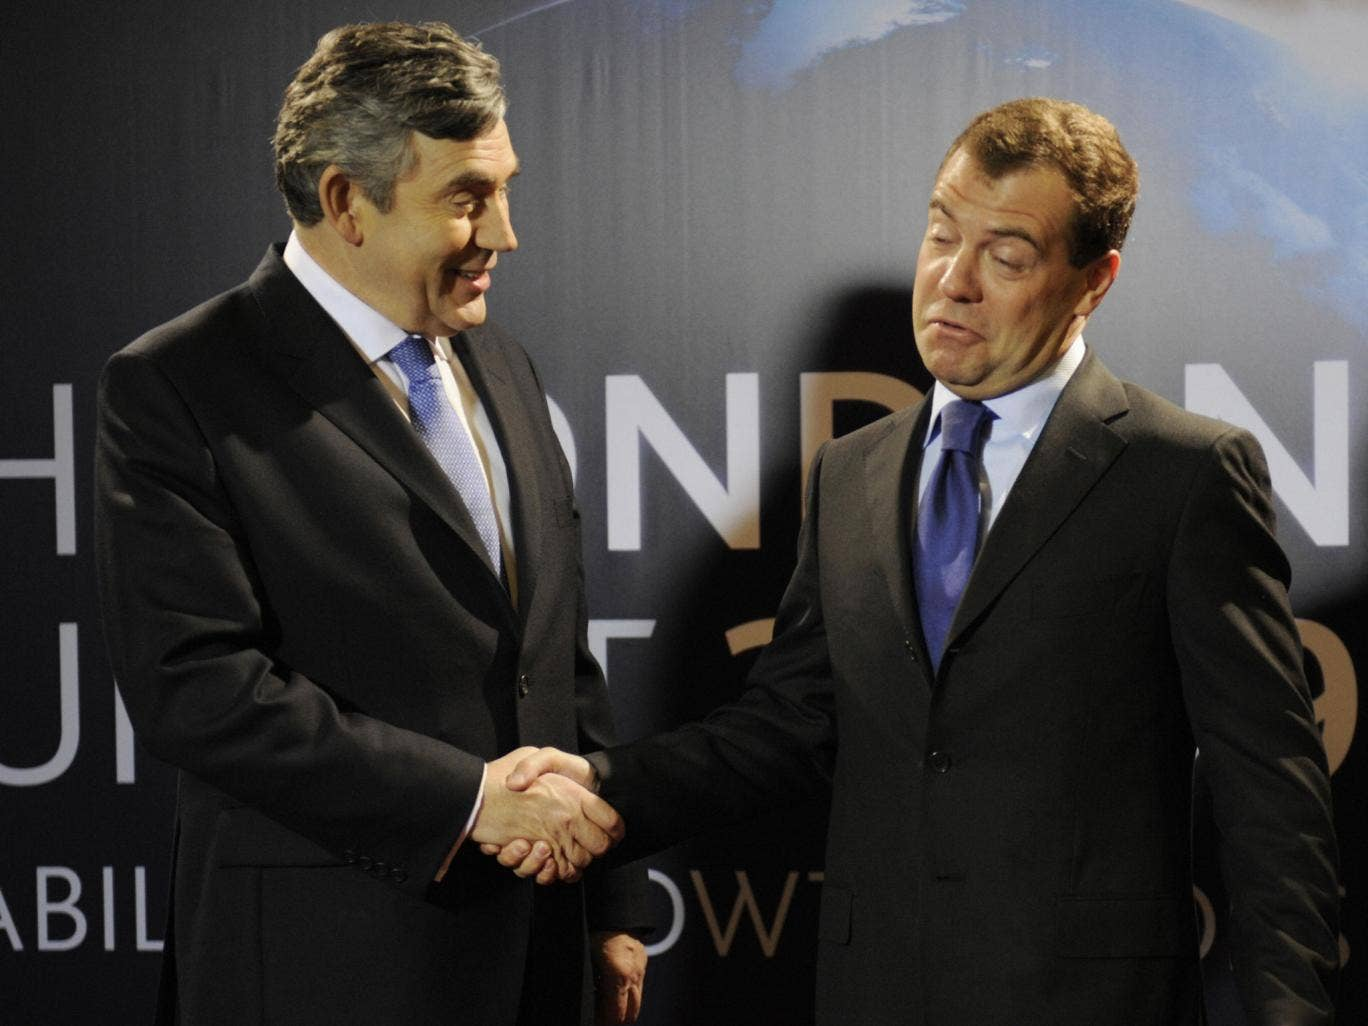 Gordon Brown with the then Russian President Dmitry Medvedev at the G20 summit in London in April 2009